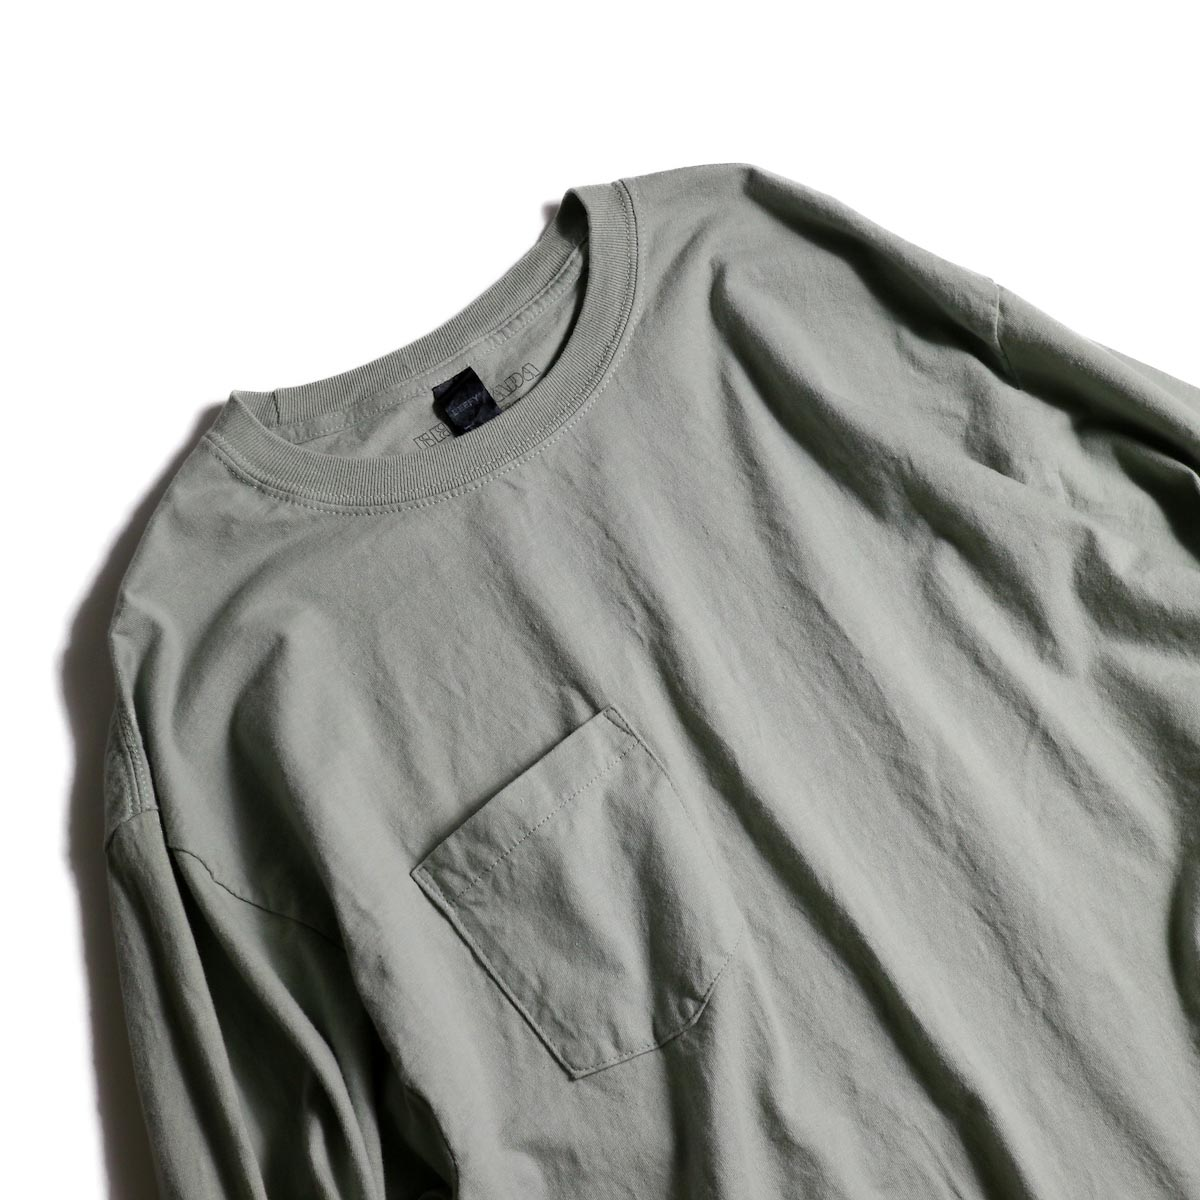 HESTRADA GEE-WIZ / SWITCH L/S Tee (Stone Green)襟、ポケット